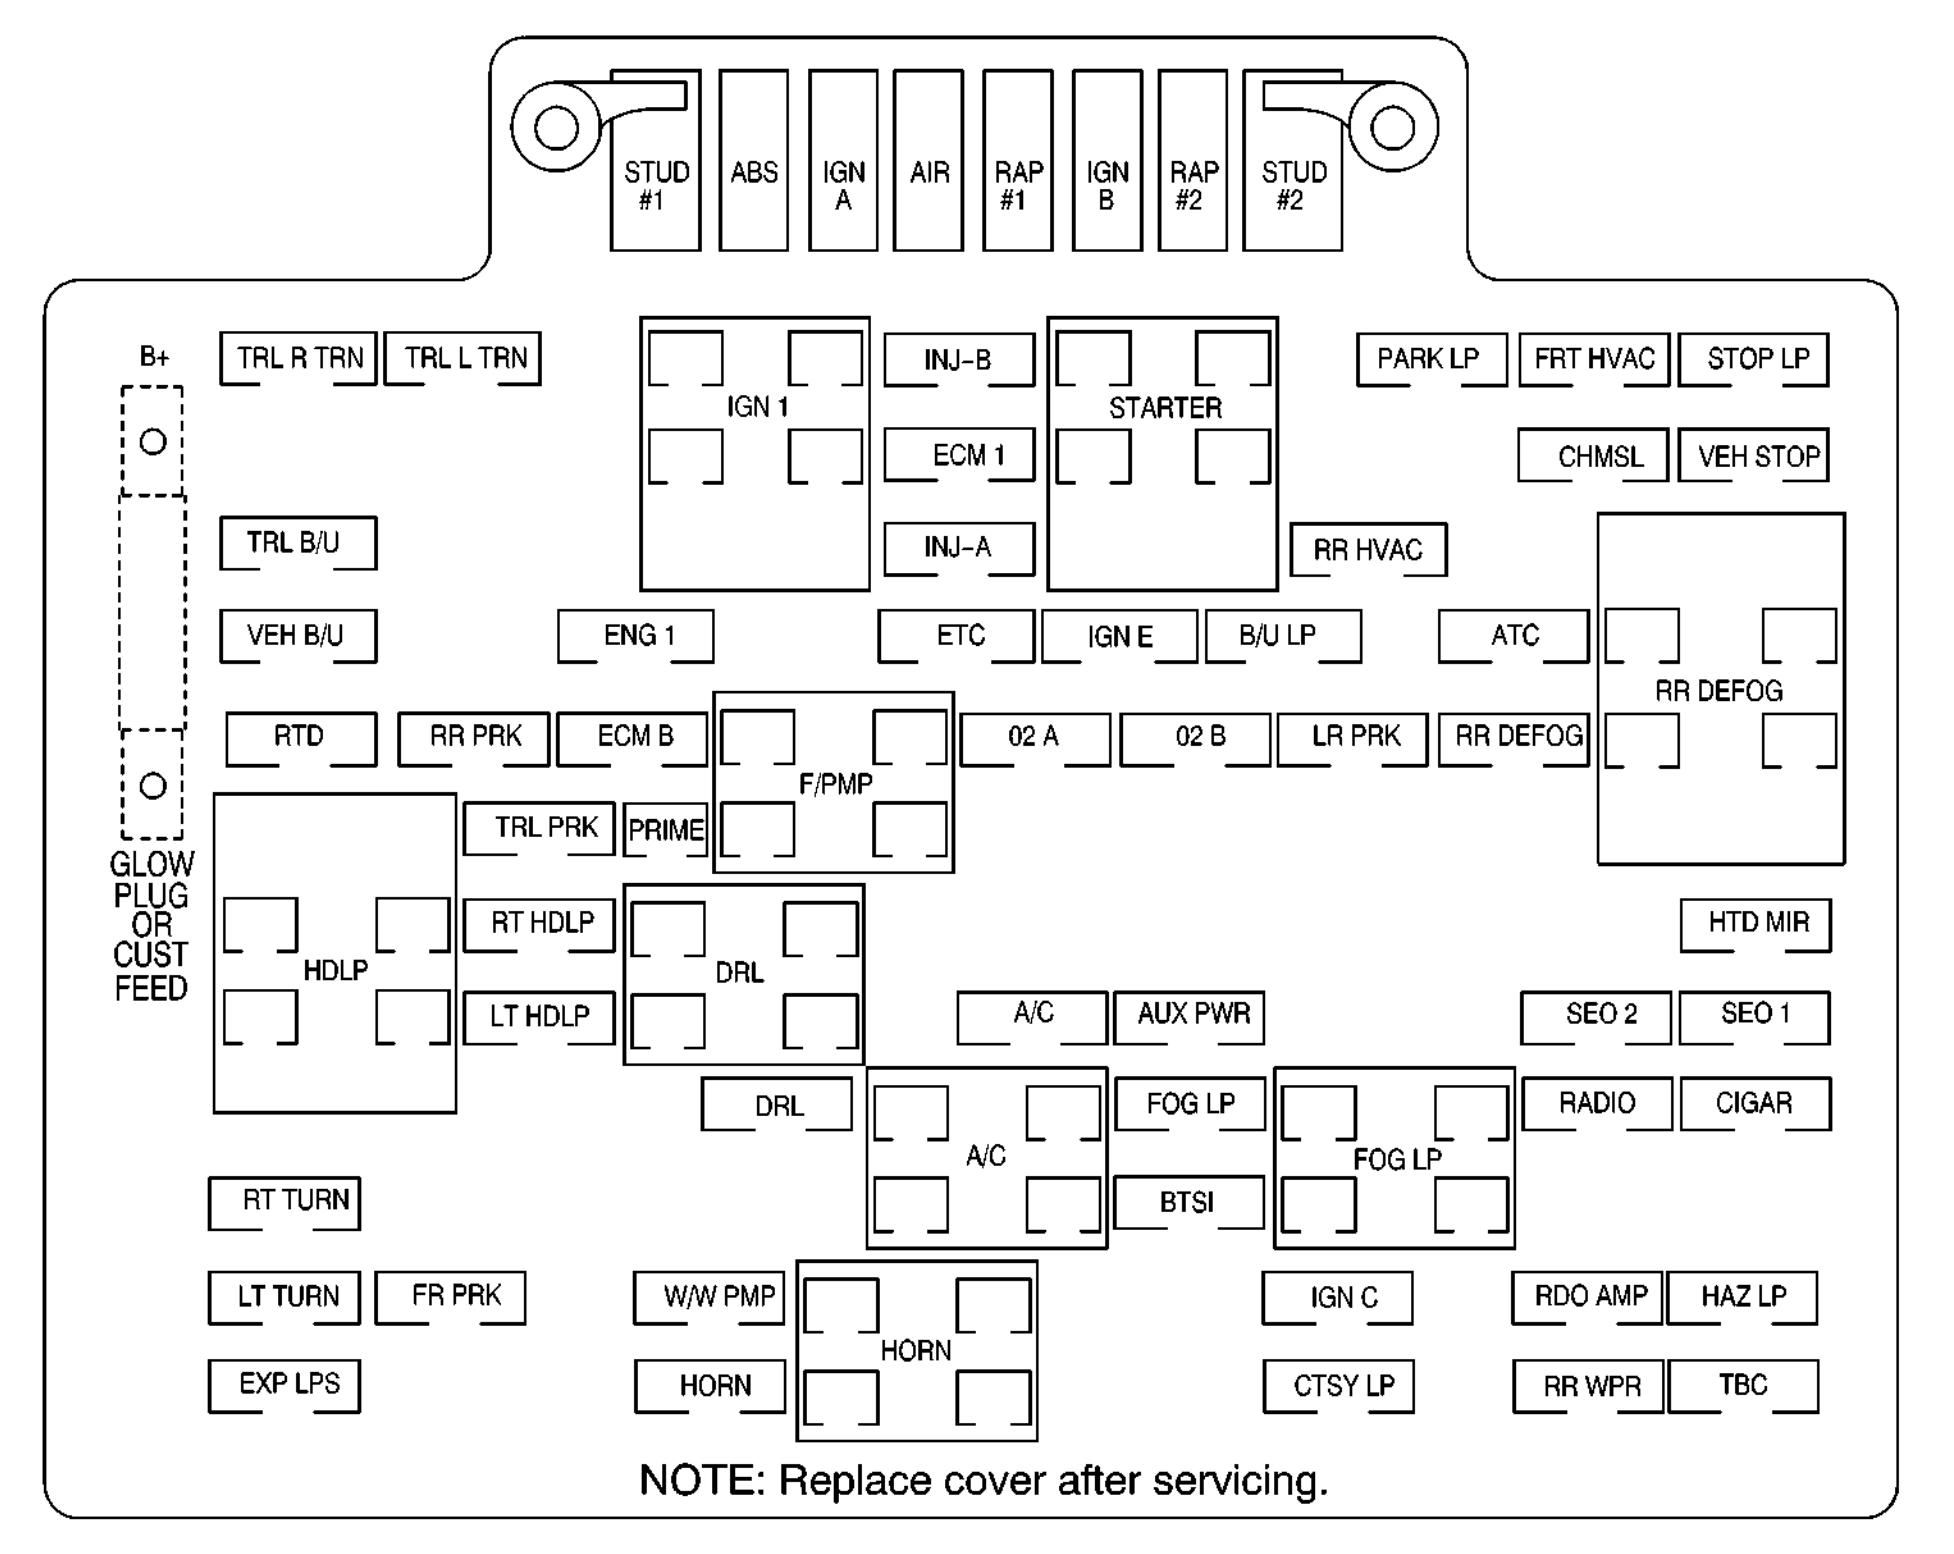 hight resolution of yukon alternator fuse diagram wiring diagram expert2003 yukon fuse diagram alternator wiring diagrams mon 2003 yukon